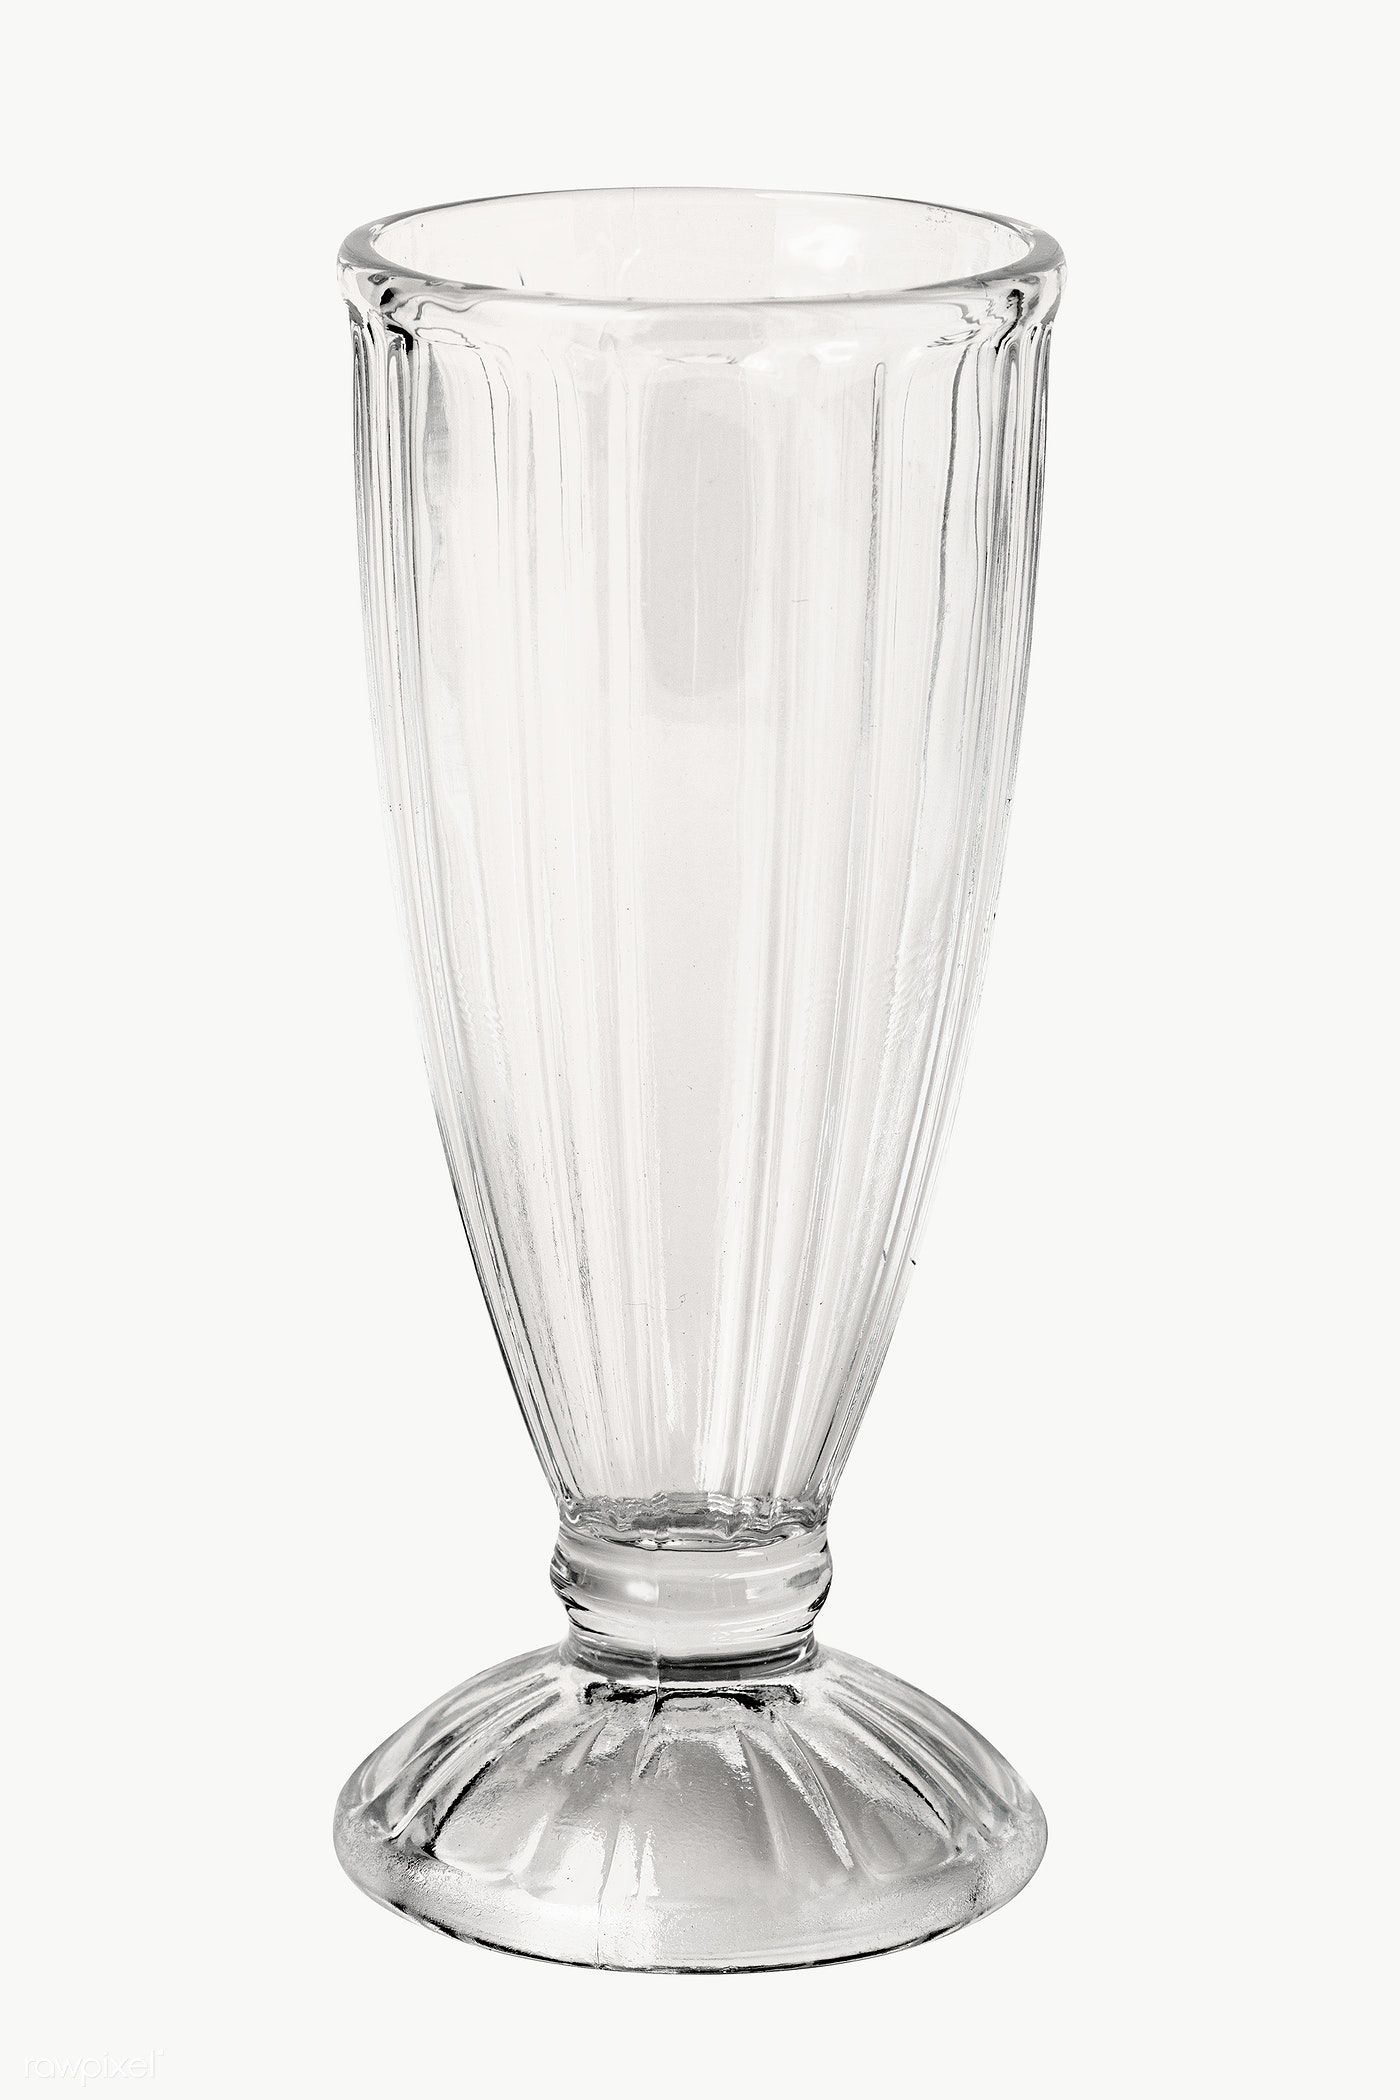 Glass Cup Transparency And Translucency Water Png Adobe Illustrator Boiling Boiling Water Broken Glass Cup Glass Cup Glass Transparent